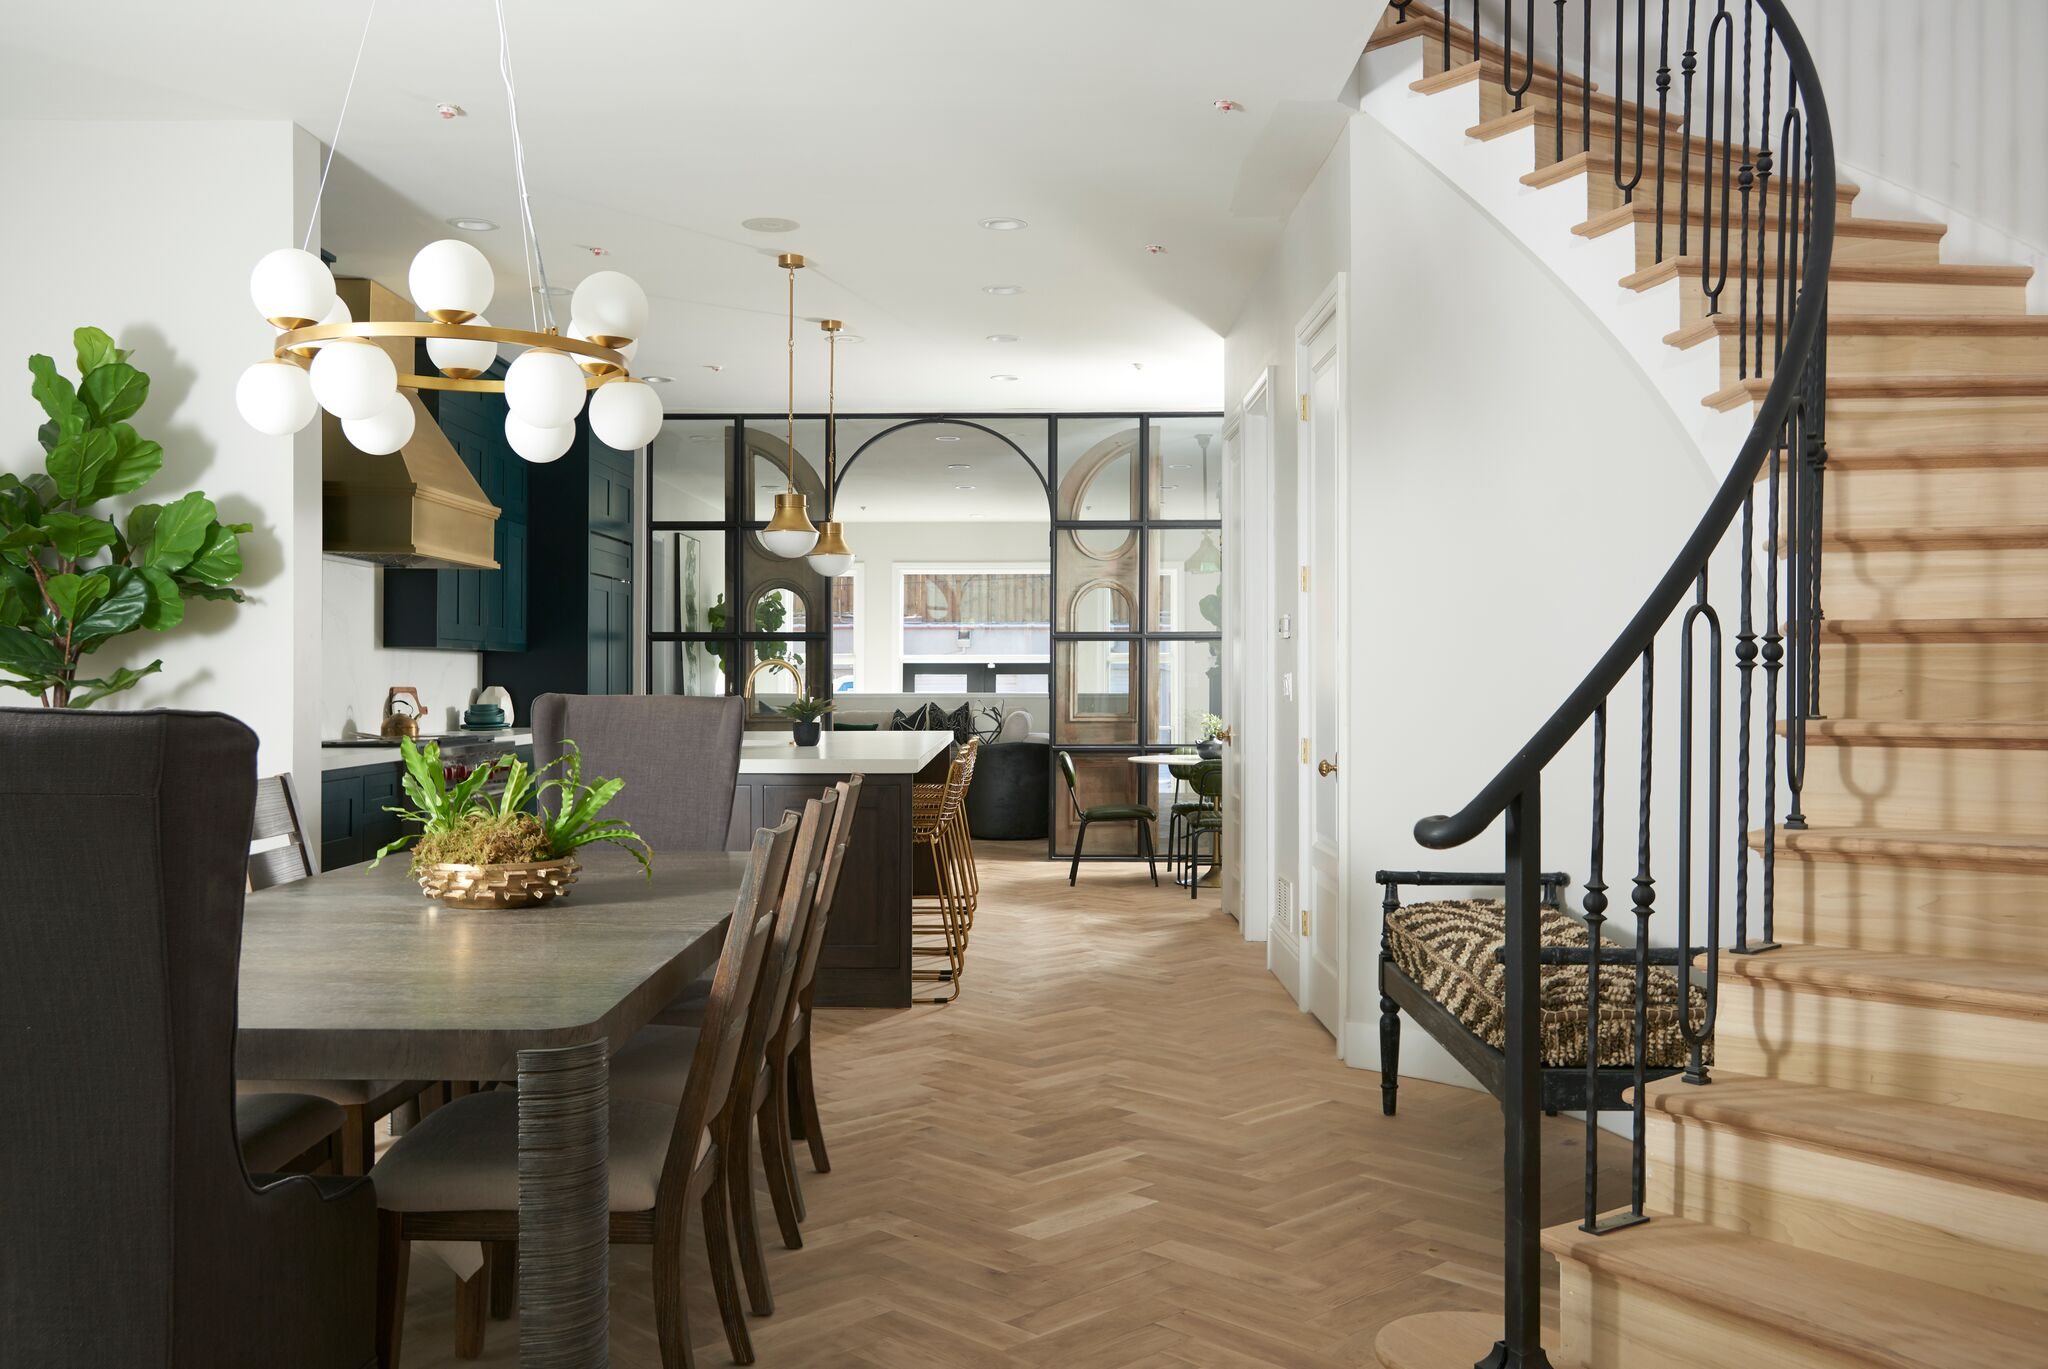 Sub Zero Appliances >> Landmark Chicago Home - Haute Residence: Featuring the best in Luxury Real Estate and Interior ...